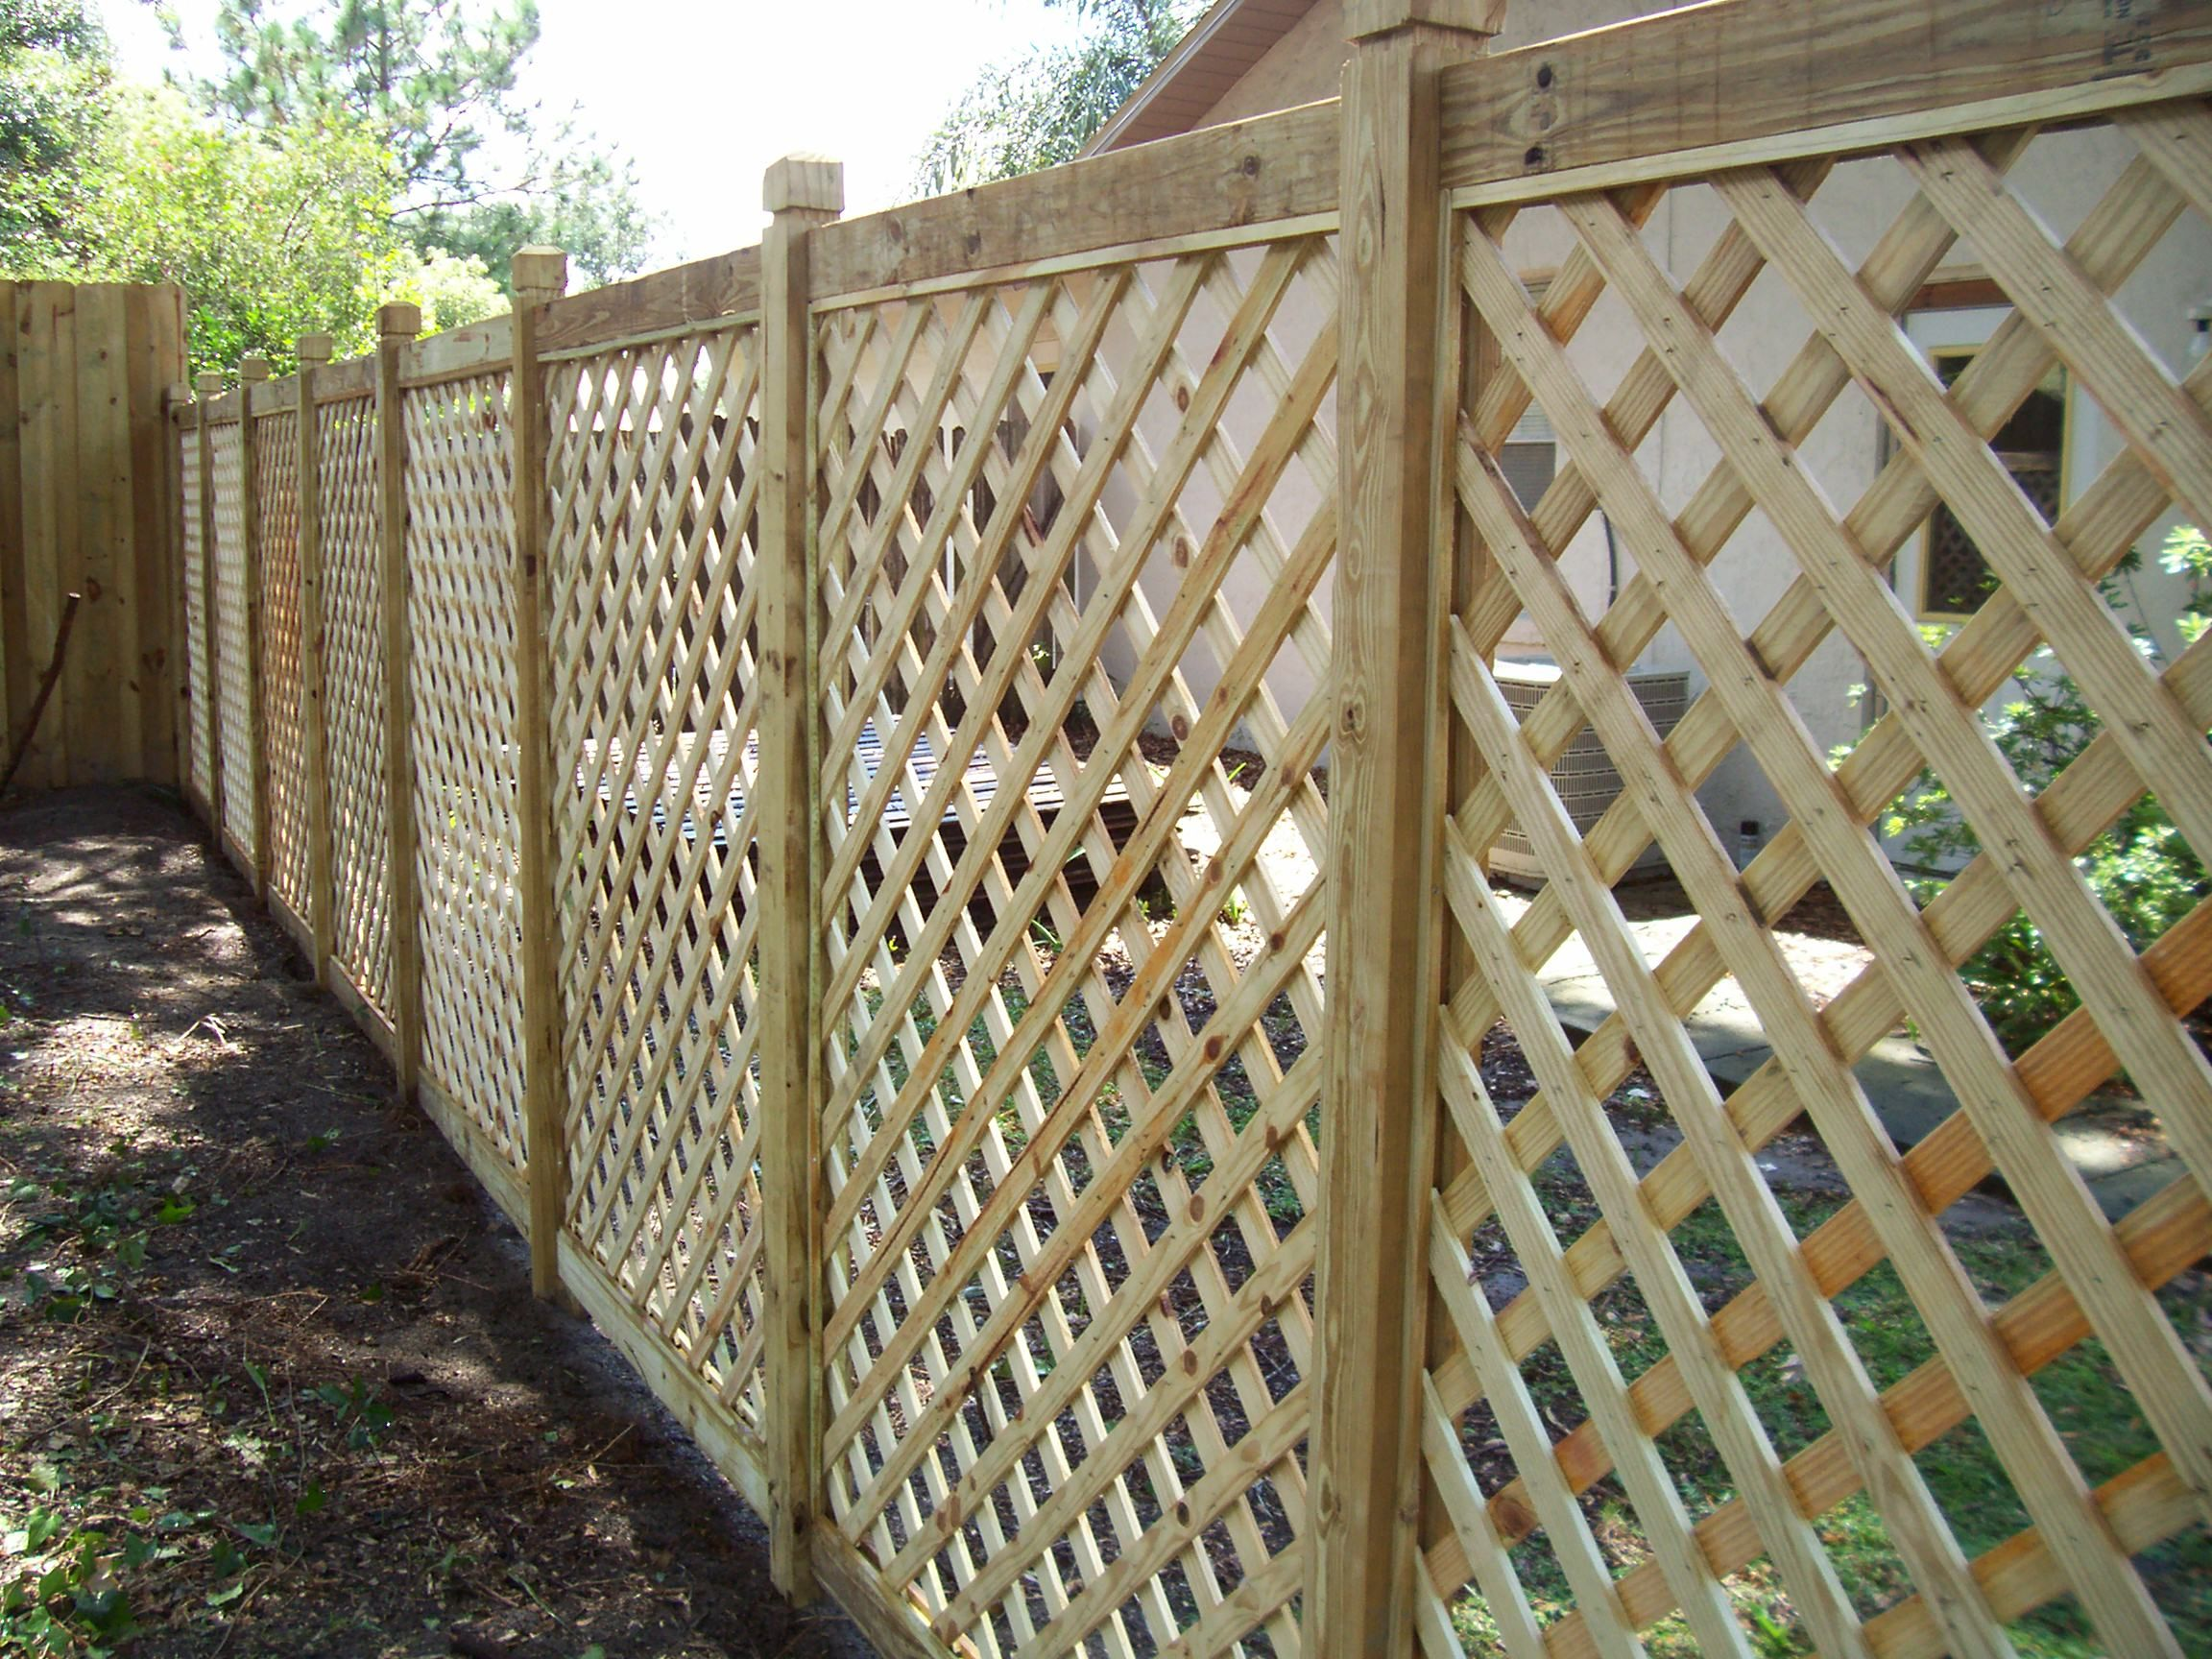 Lattice fence 6ft wood lattice picture frame fence gardens lattice fence 6ft wood lattice picture frame fence baanklon Choice Image